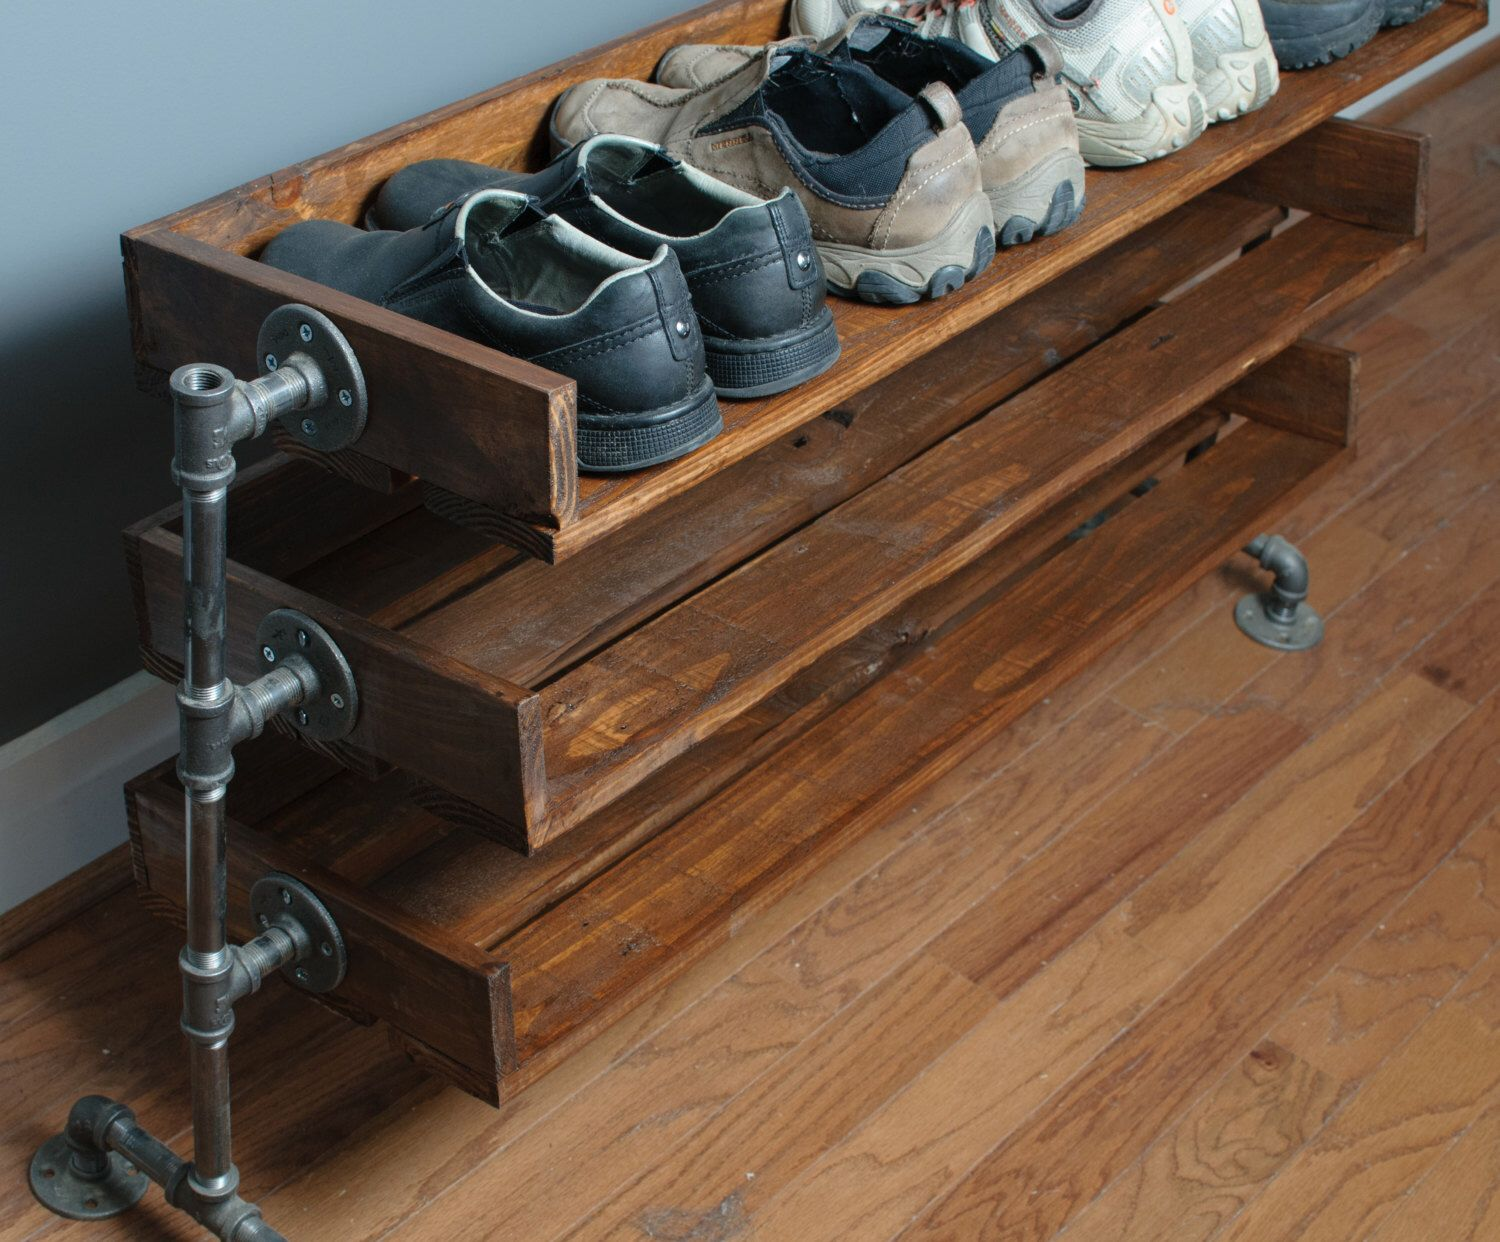 Handmade Reclaimed Wood Shoe Stand with Pipe Stand Legs by ReformedWood on Etsy https://www.etsy.com/listing/176430256/handmade-reclaimed-wood-shoe-stand-with